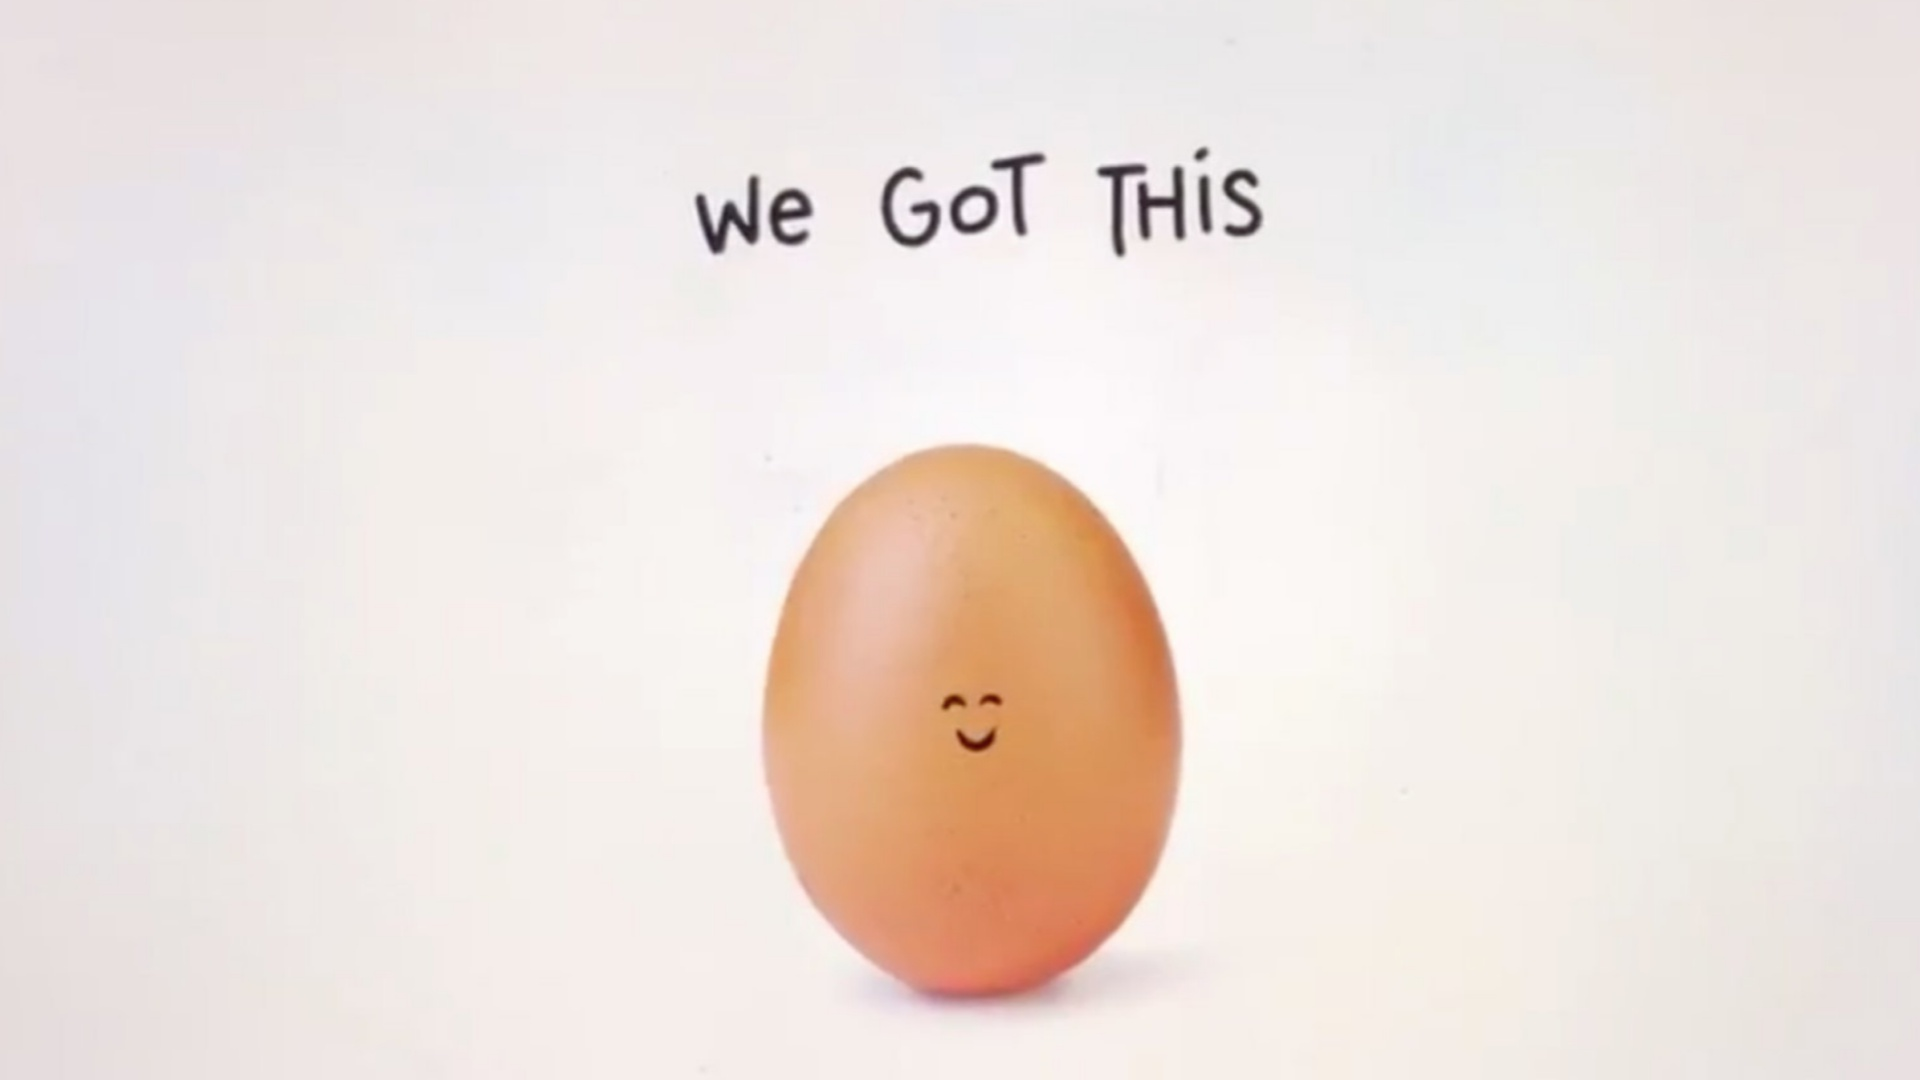 Mysterious, well-liked egg's Instagram account is all about mental health